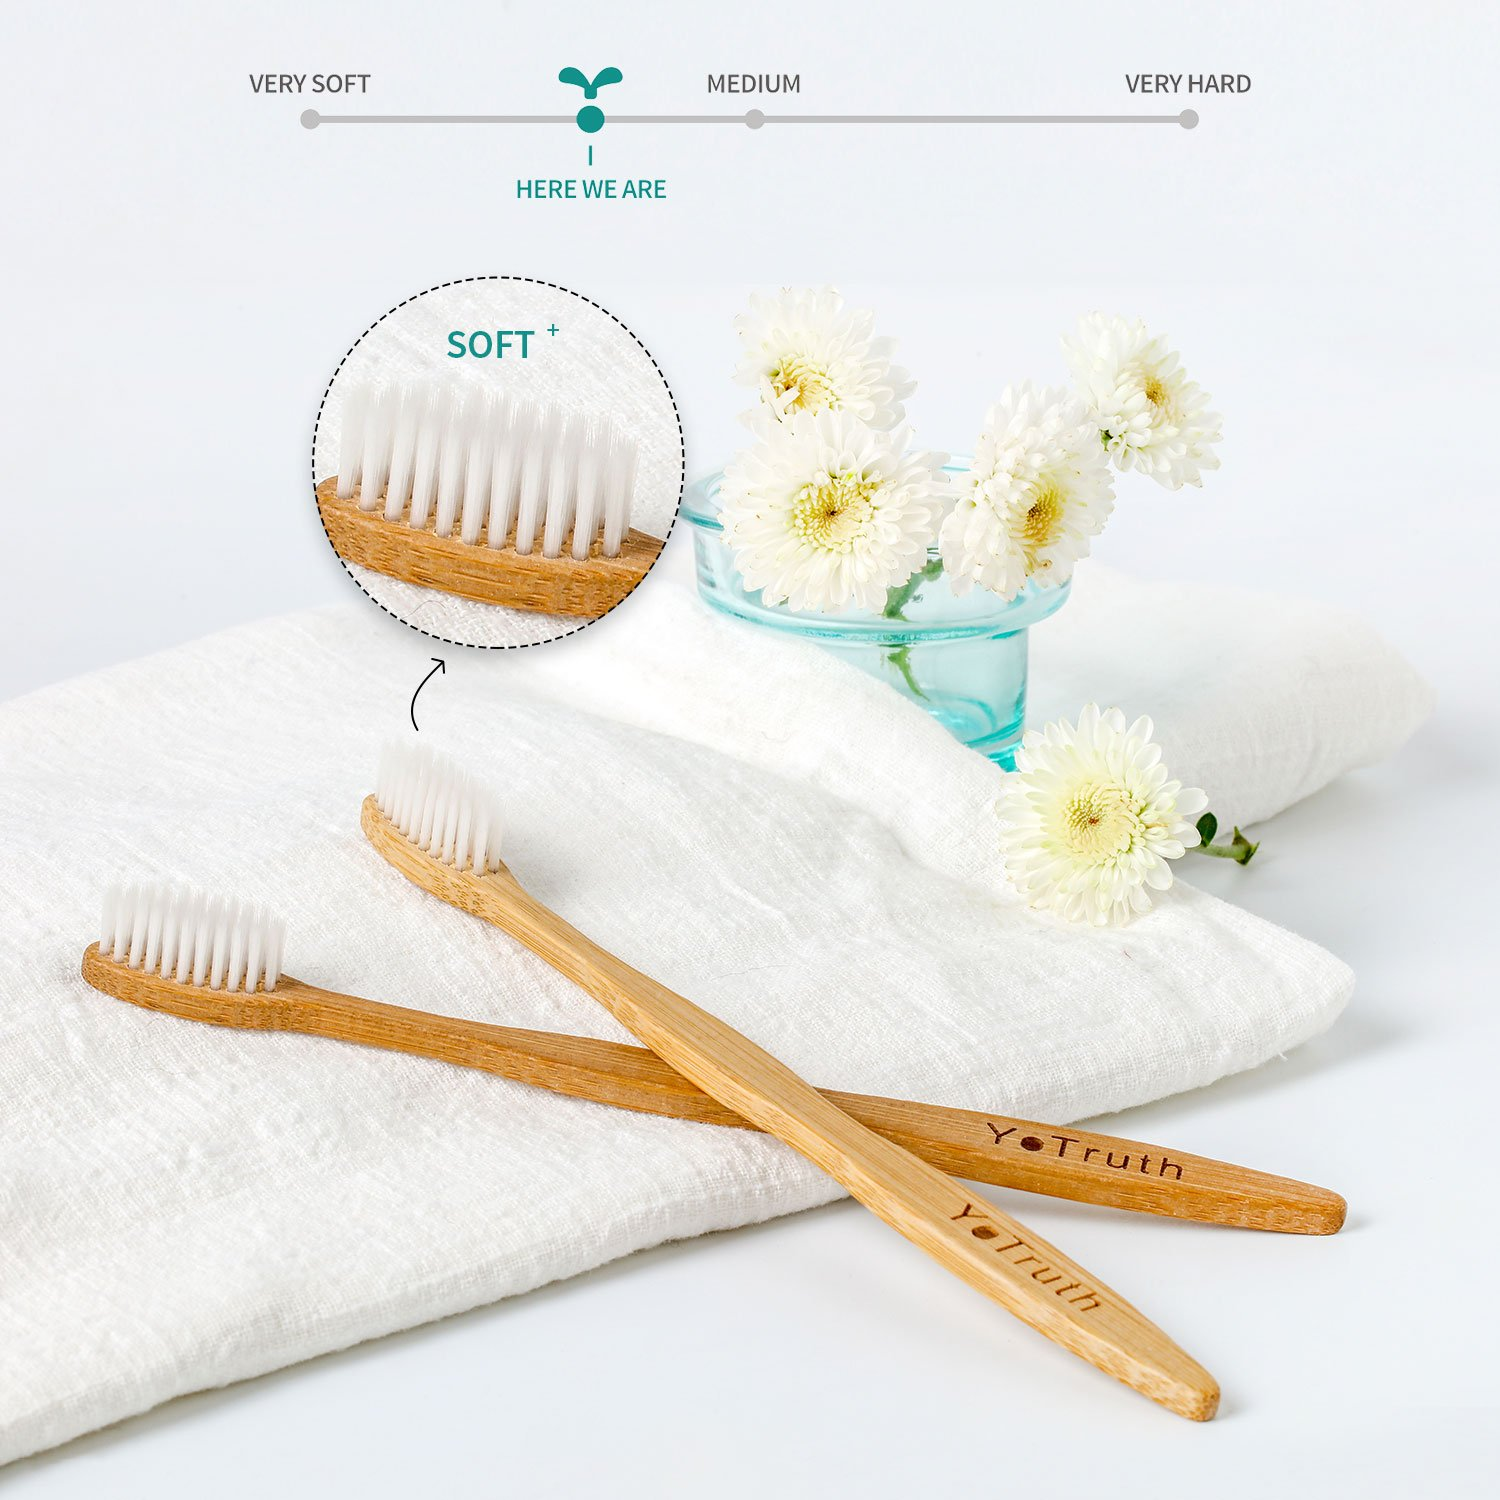 Yotruth Bamboo Toothbrush Set Natural Eco Friendly Bamboo Toothbrush Four Sets of Each box